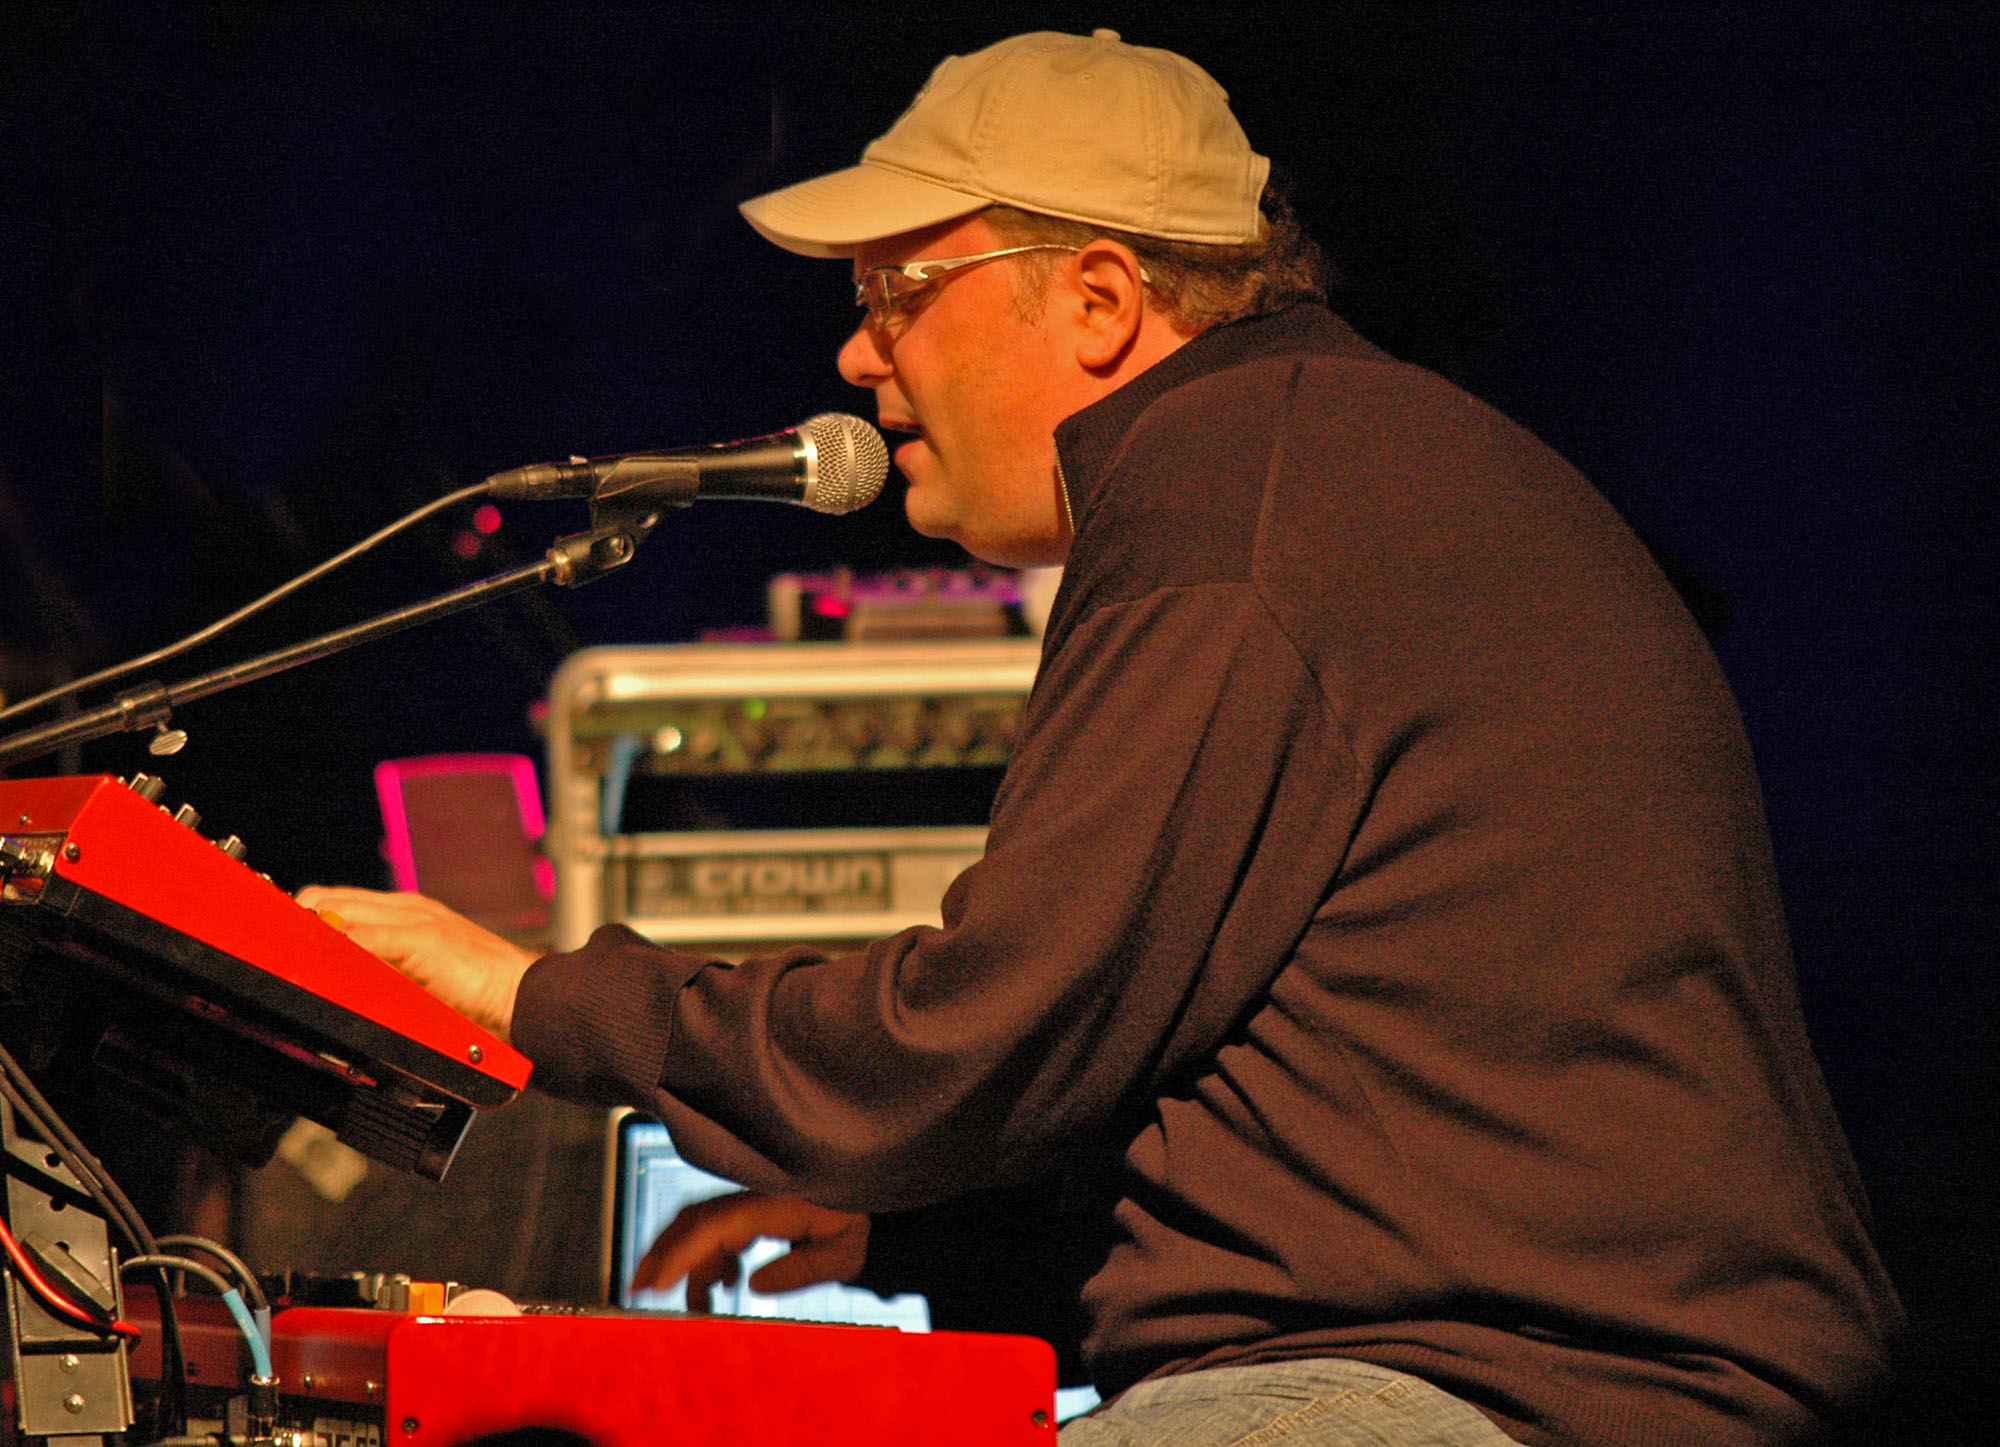 Scott Kinsey, Performing with Human Element at the New Universe Music Festival 2010